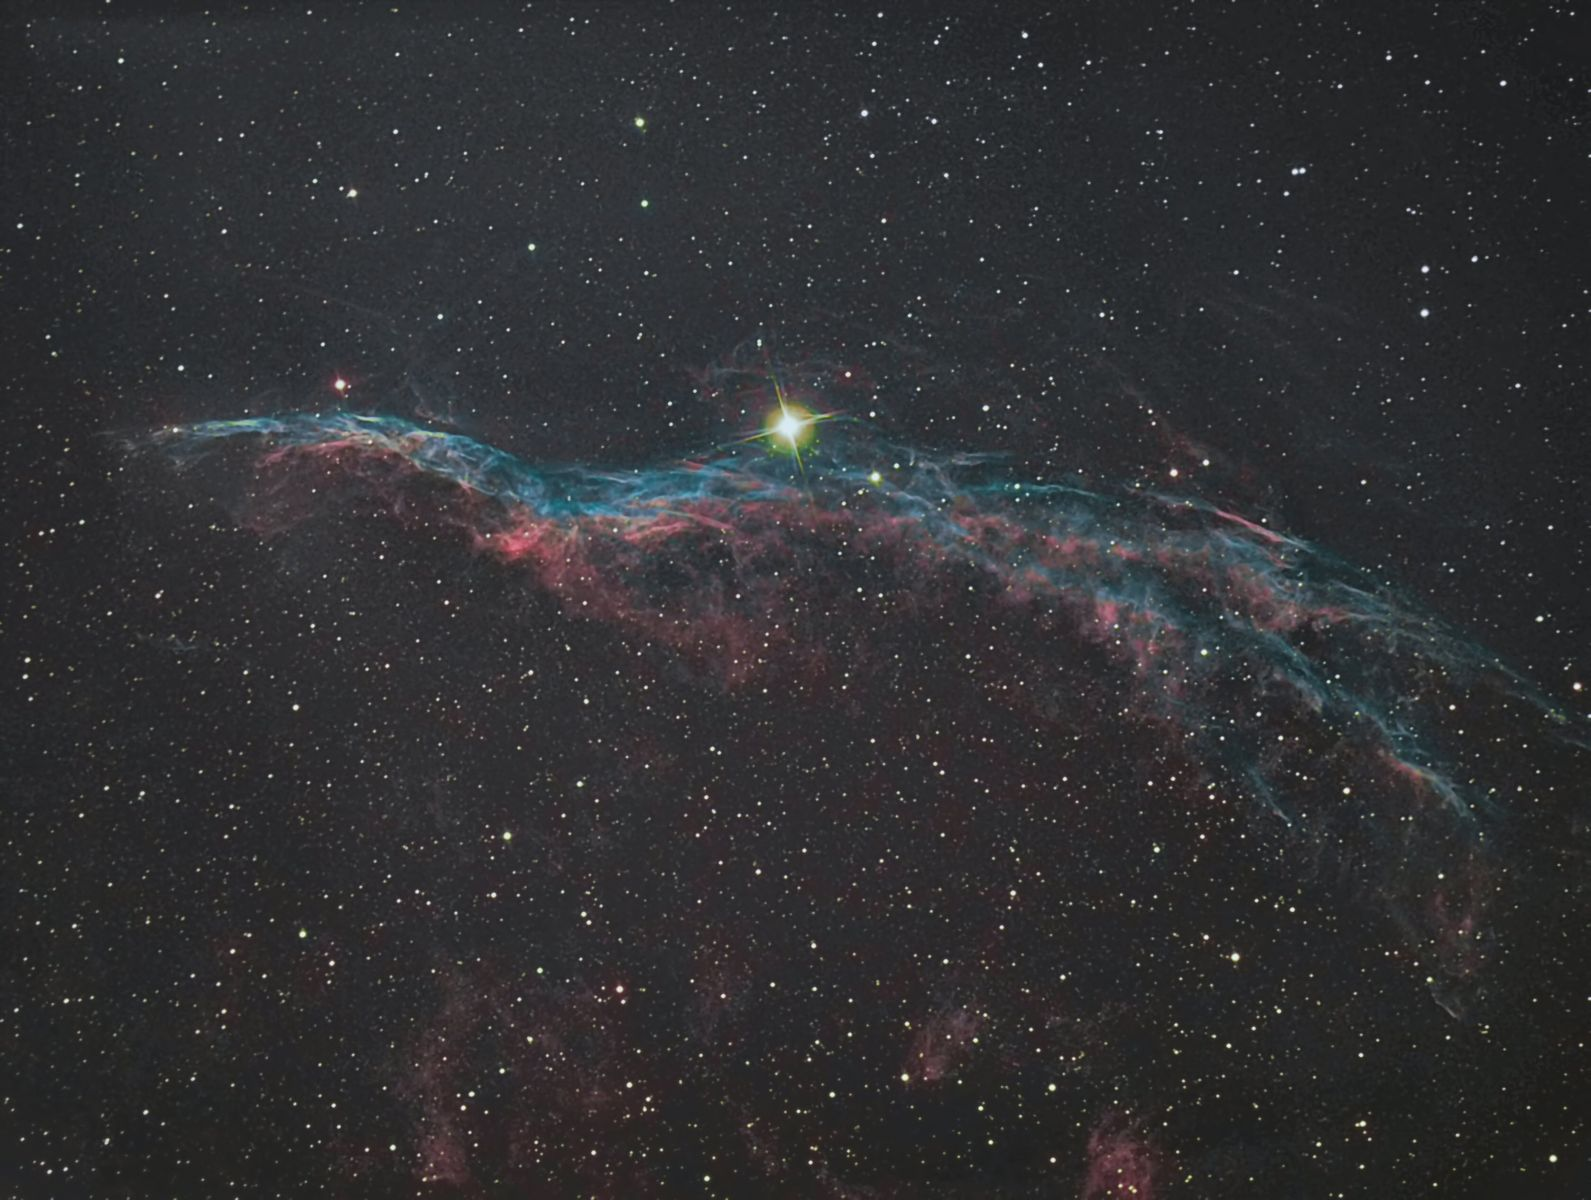 NGC 6960 the Witches broom